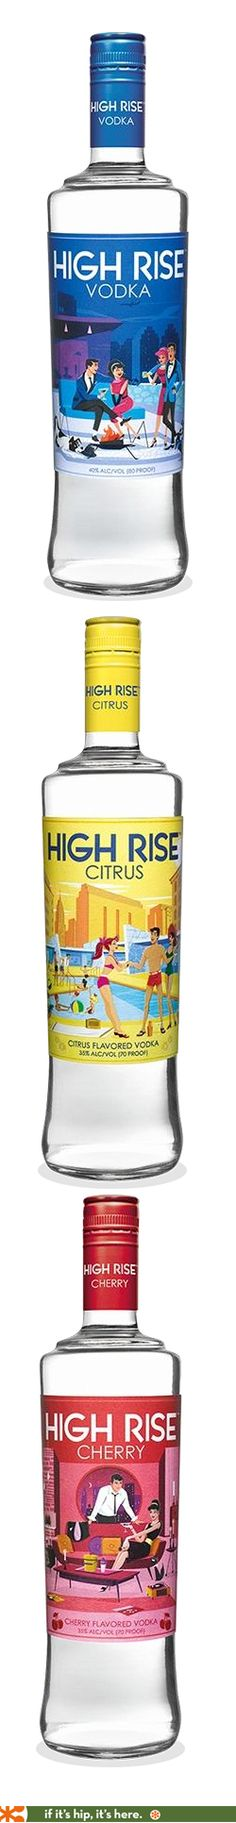 New High Rise Vodkas have fun retro illustrated labels.